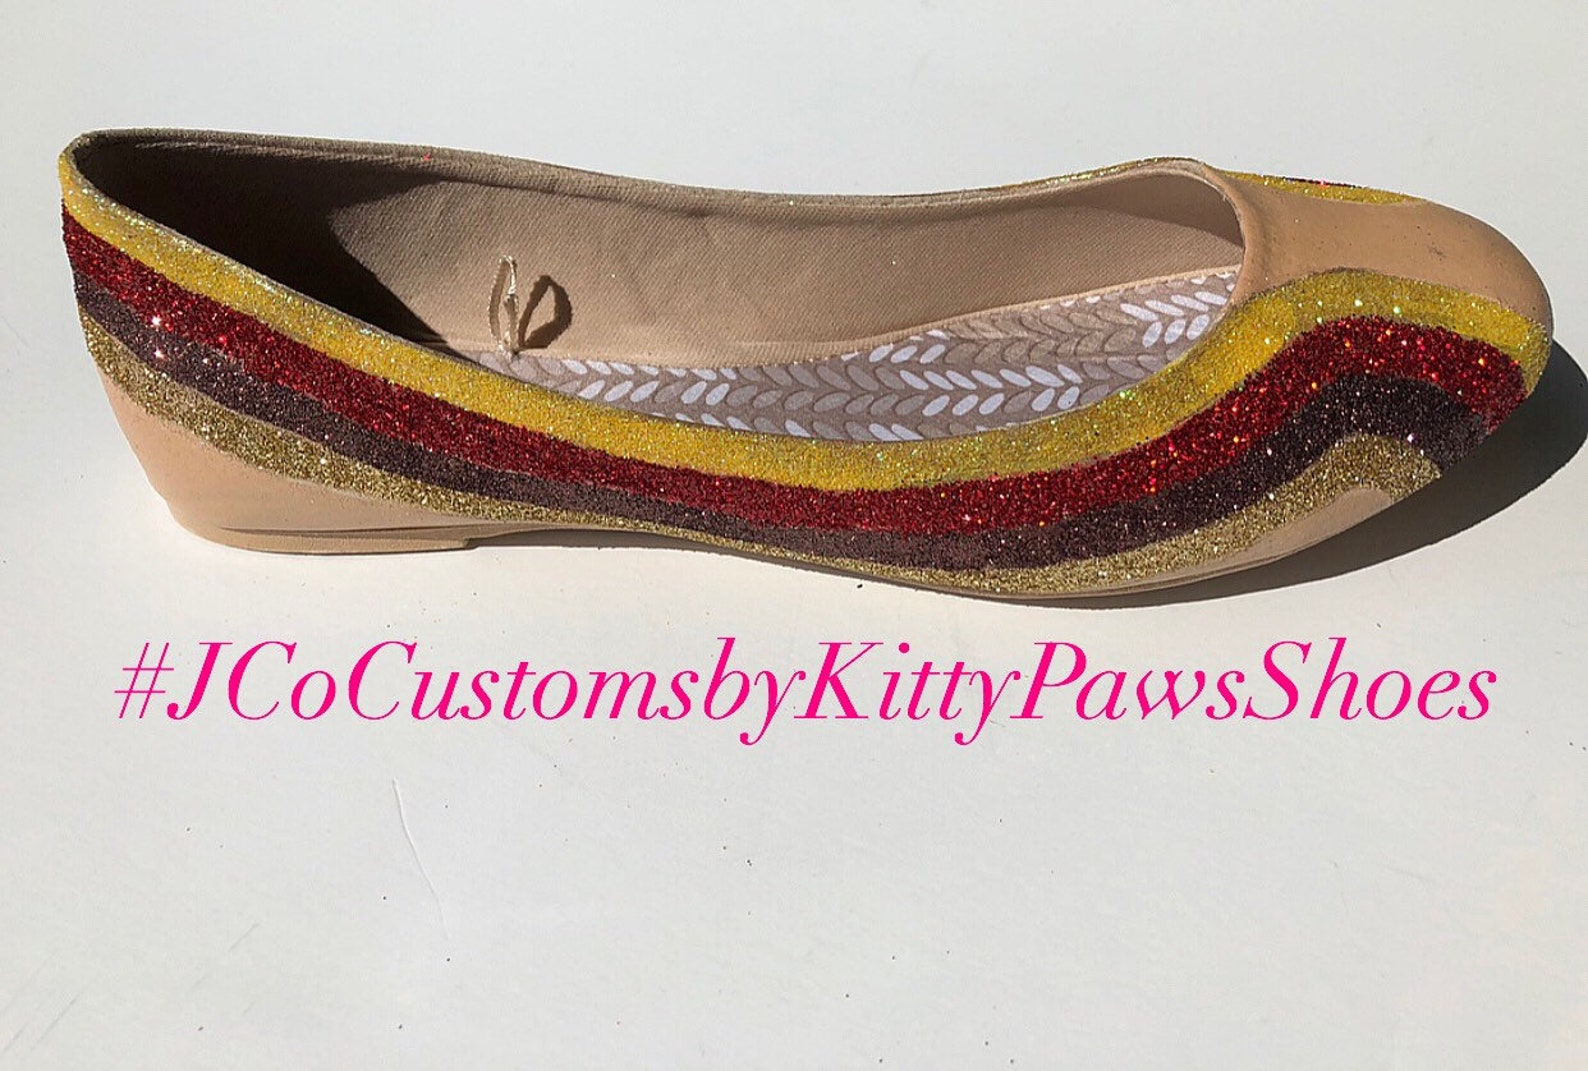 ballet flat women's custom gold red brown & champagne glitter striped flats *free u.s. shipping* jco.customs by kitty paws s